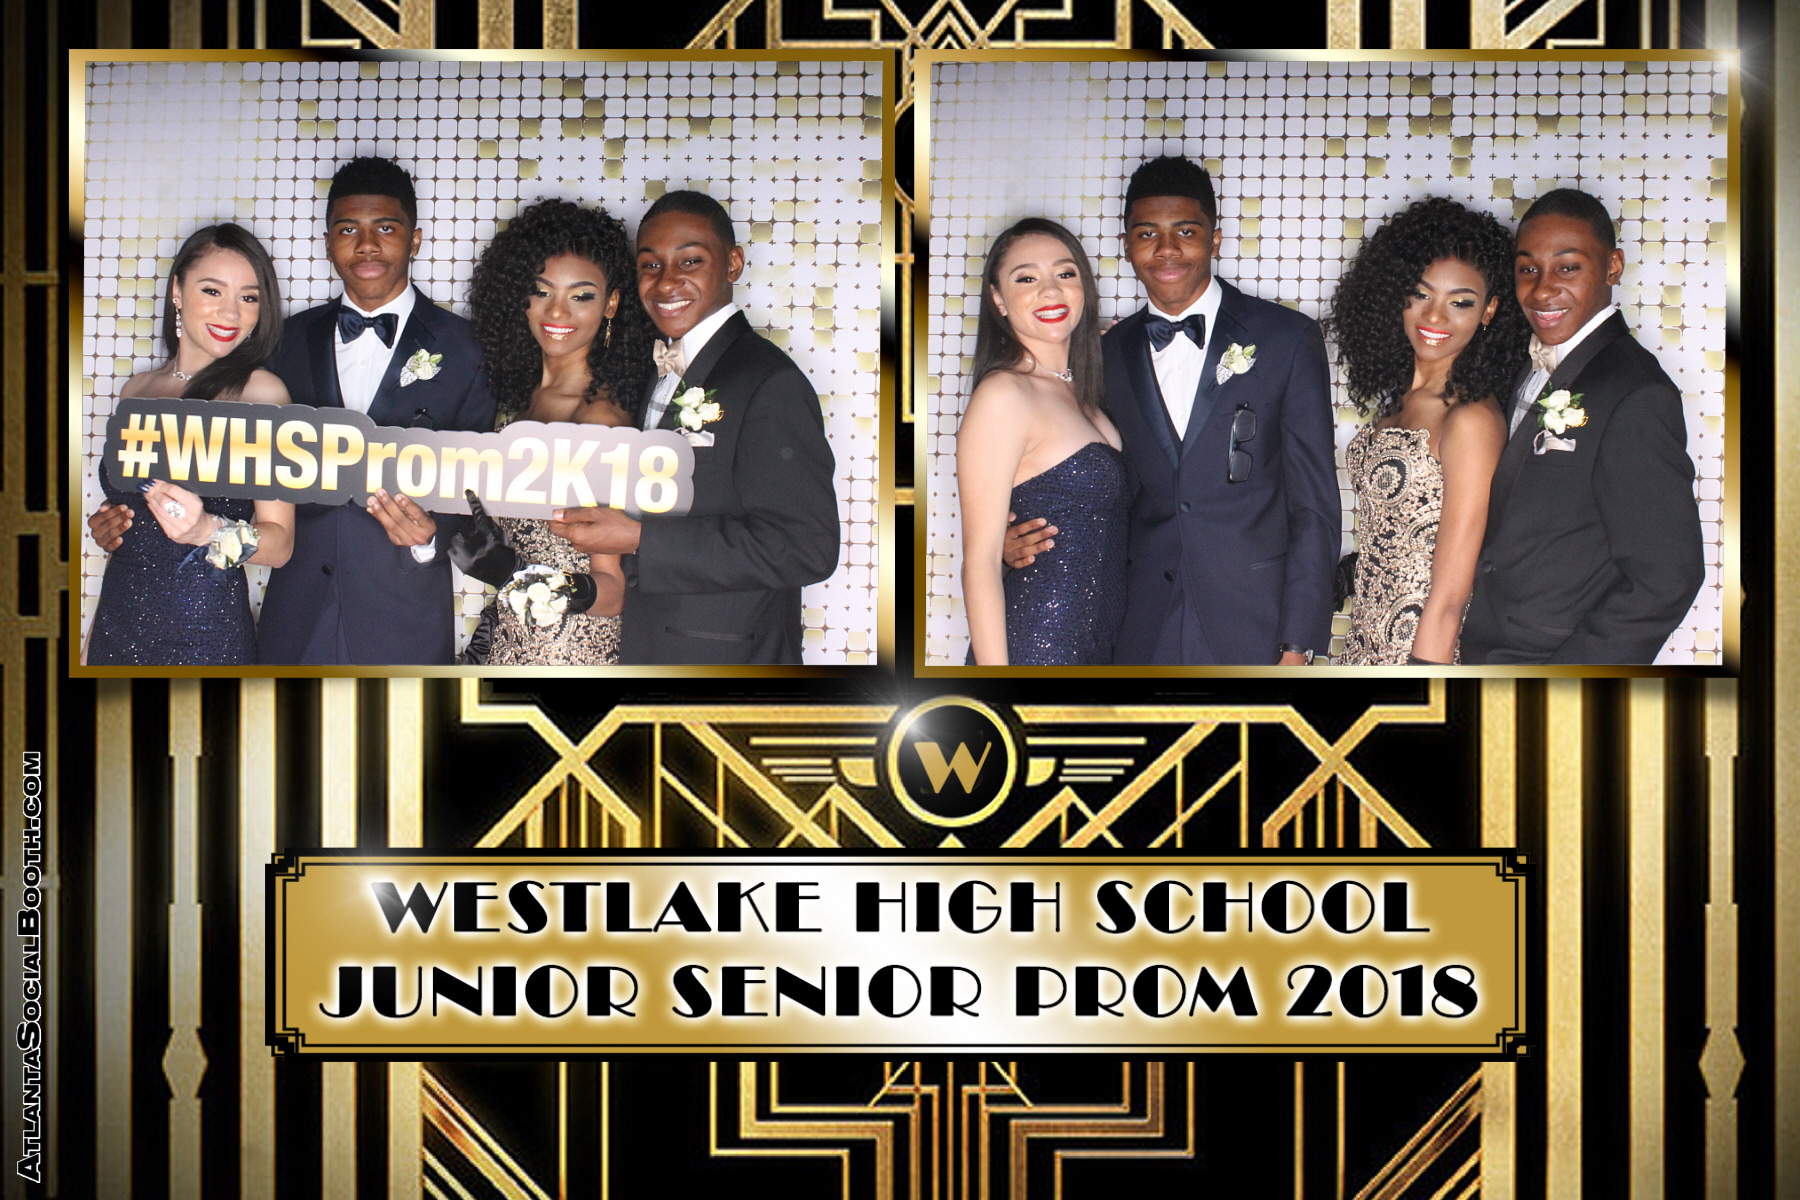 Westlake High School Prom